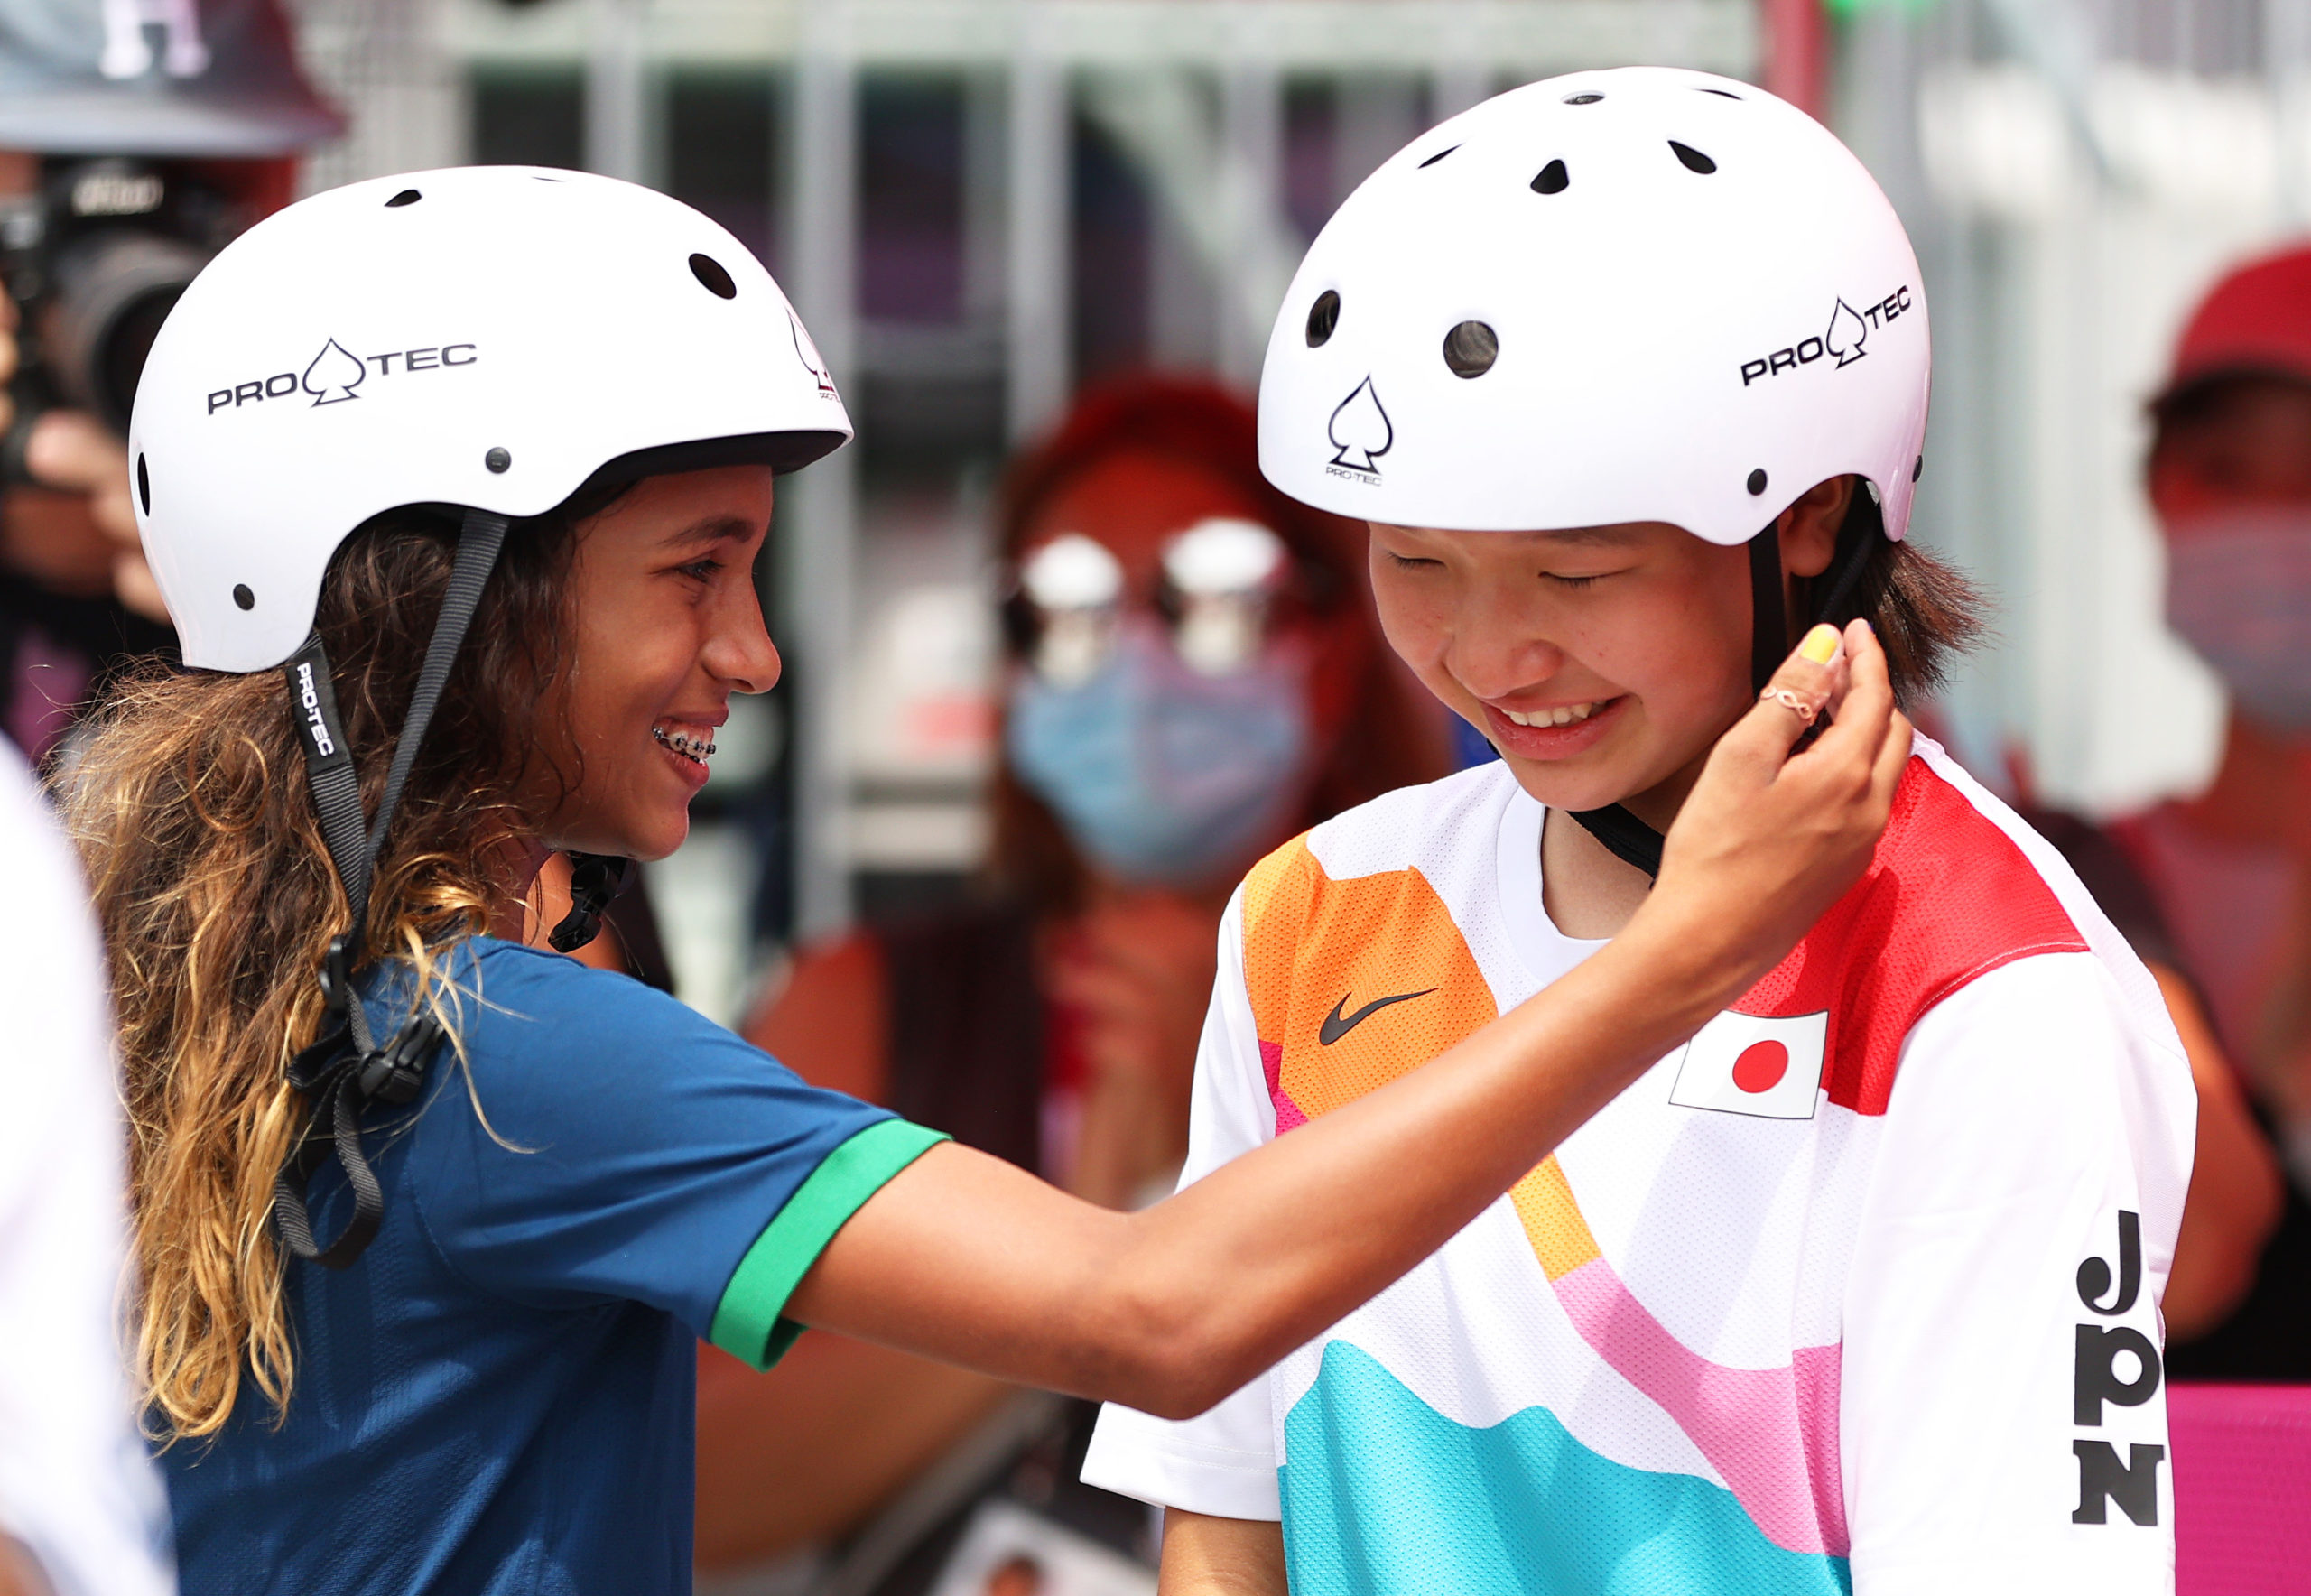 TOKYO, JAPAN - JULY 26: Rayssa Leal of Team Brazil puts her hand up to the face of Momiji Nishiya of Team Japan during the Women's Street Final on day three of the Tokyo 2020 Olympic Games at Ariake Urban Sports Park on July 26, 2021 in Tokyo, Japan. (Photo by Patrick Smith/Getty Images)